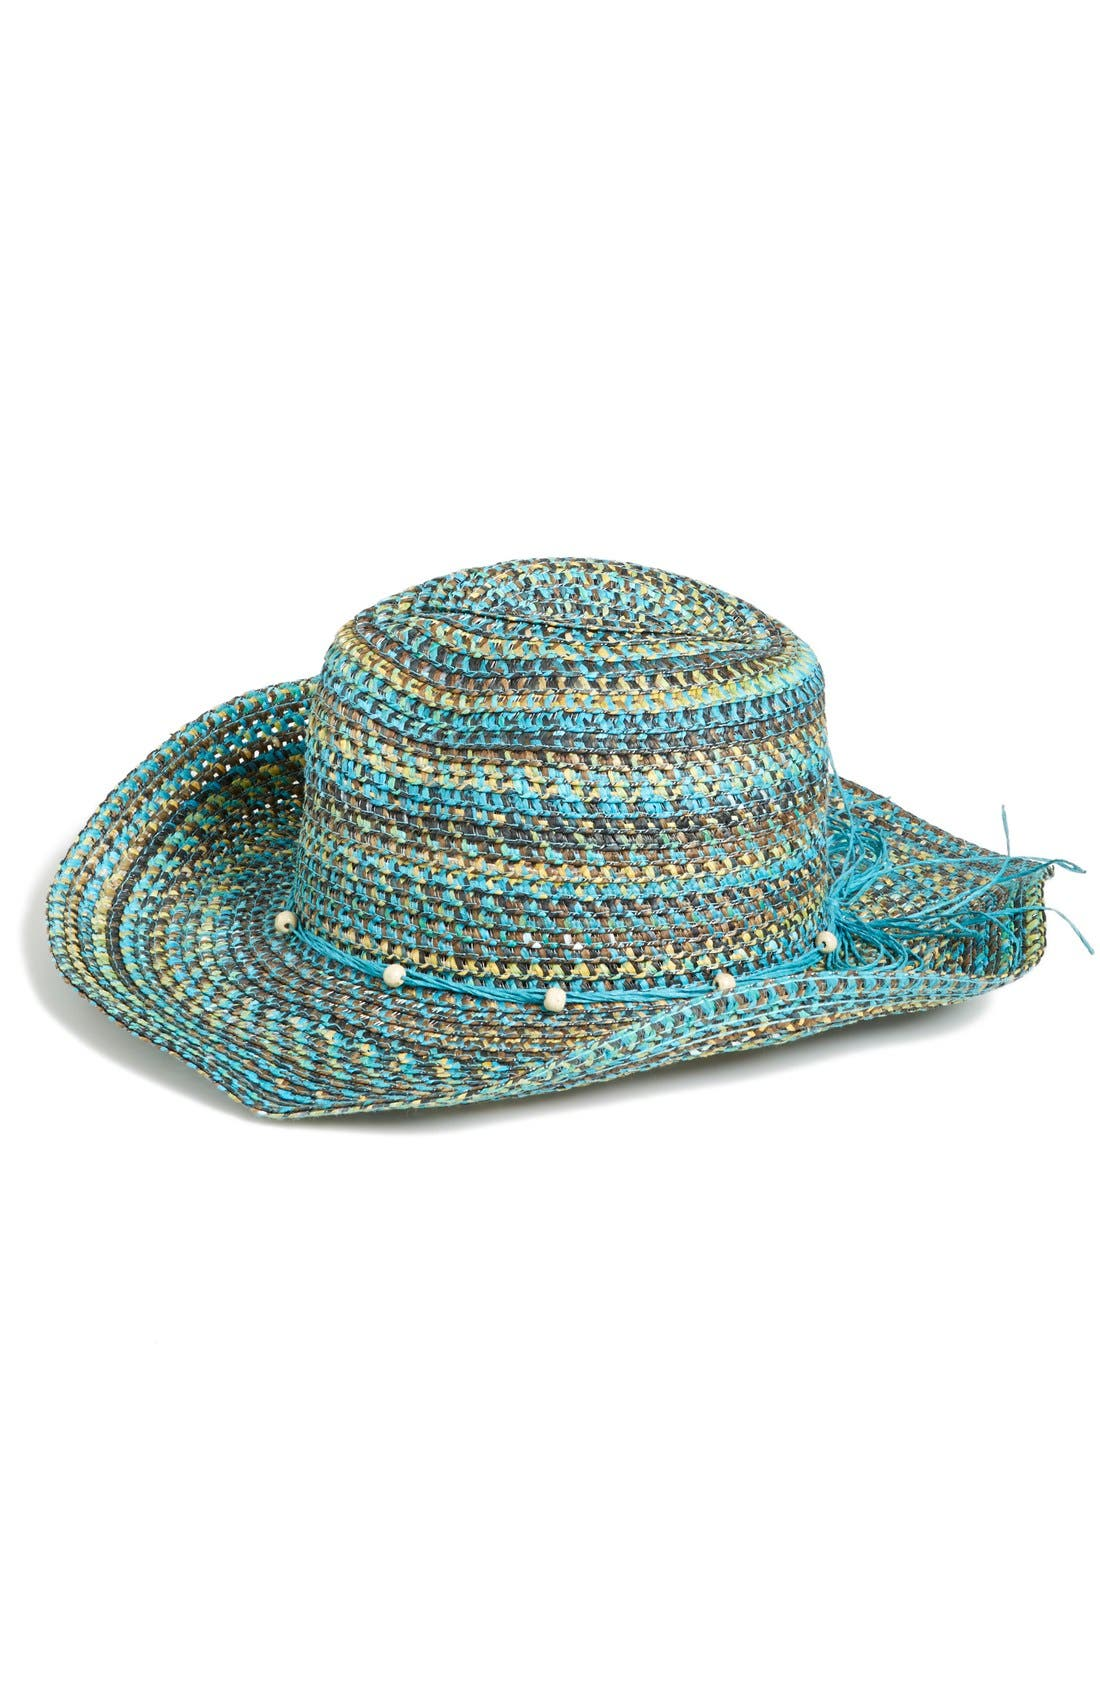 Multicolor Straw Hat,                         Main,                         color, Turquoise